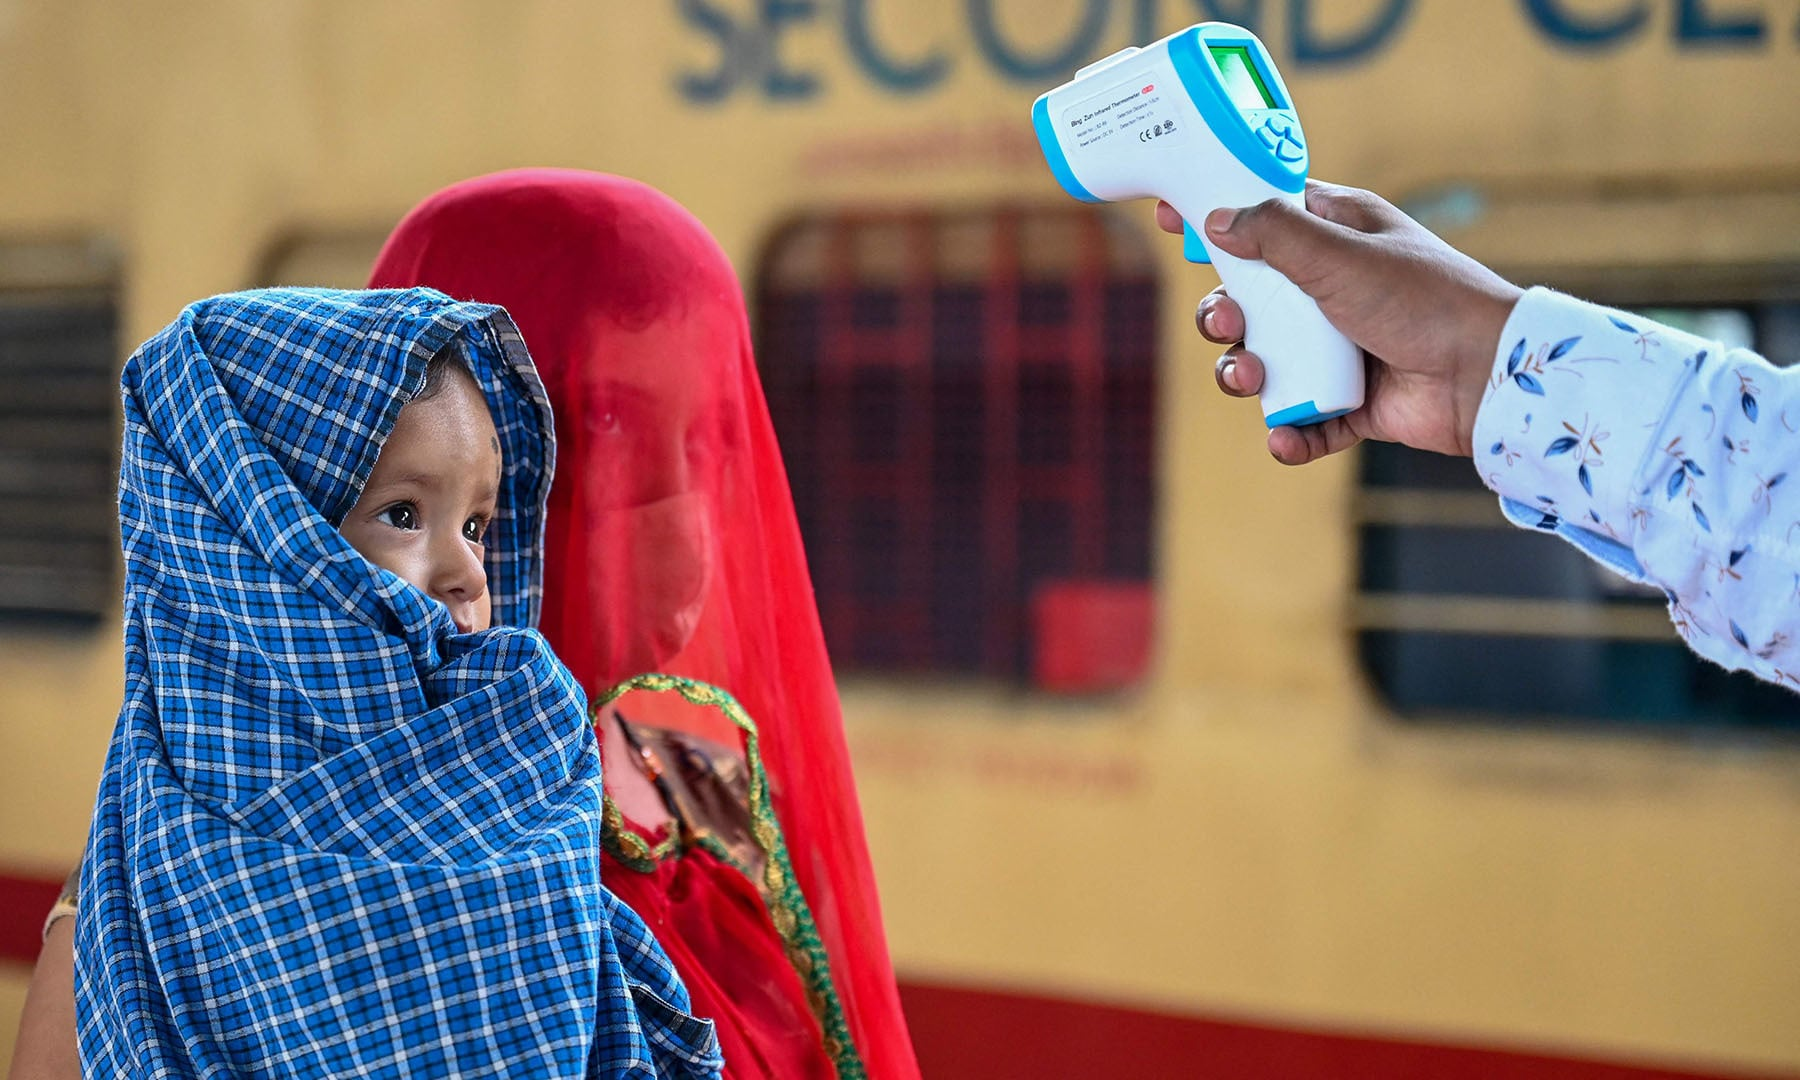 A health worker checks the body temperature of a passenger during a Covid-19 screening as she arrives with her child at a railway platform on a long distance train, in Mumbai on June 8, 2021. — AFP